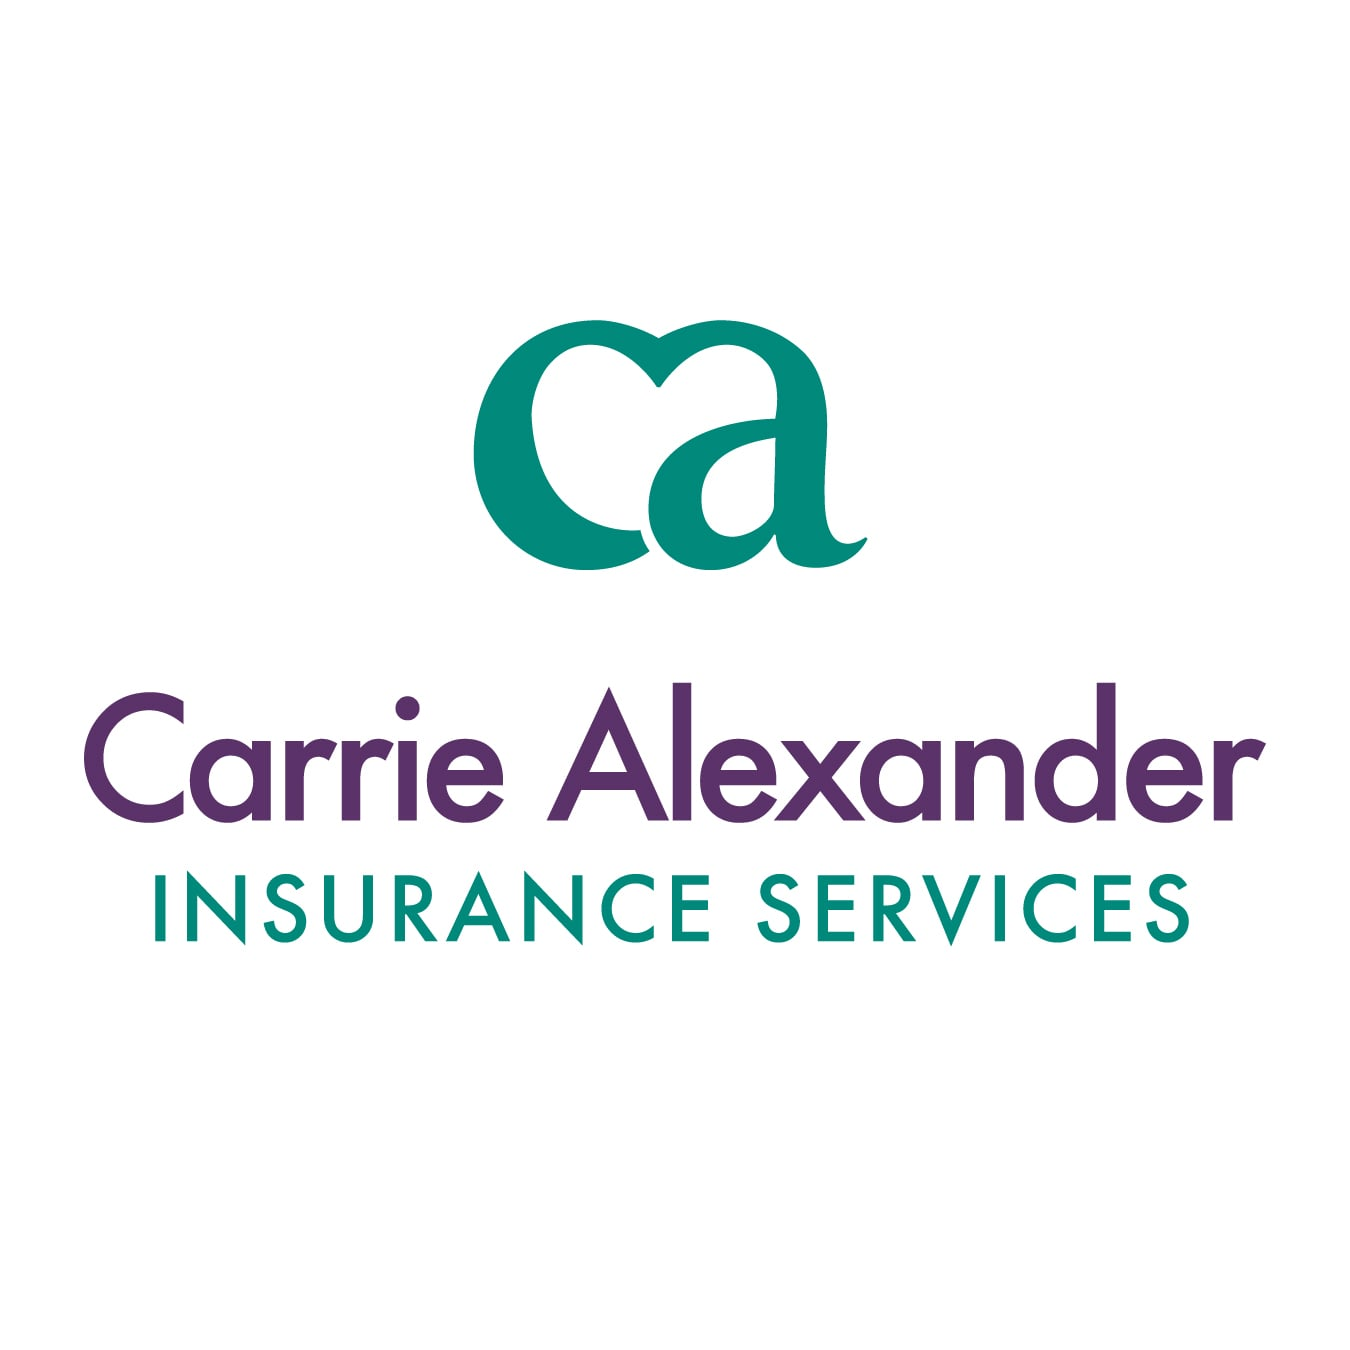 Carrie Alexander Insurance Services